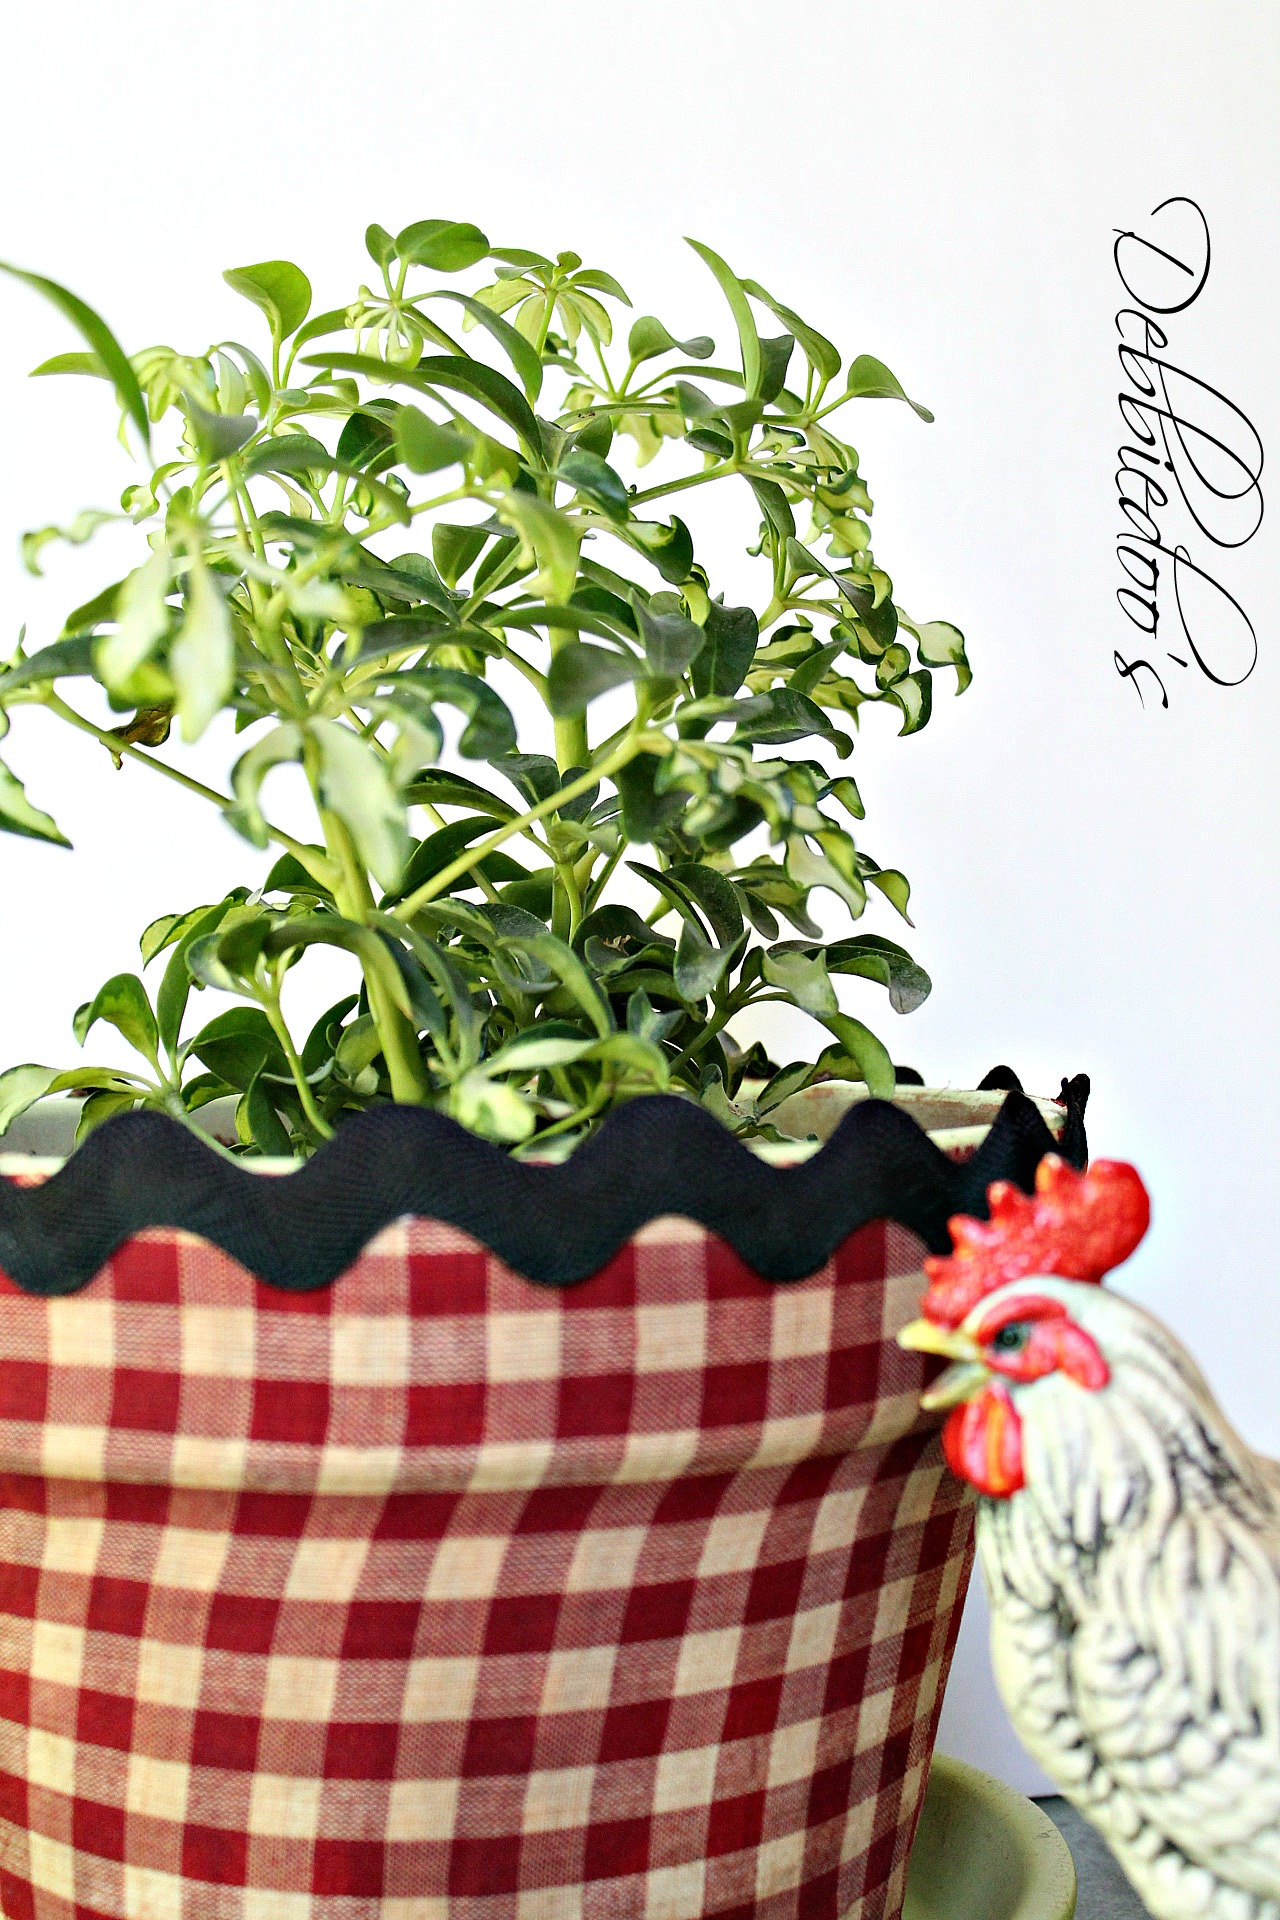 Mod podge terra cotta pots with fabric and a vintage recipe book 022